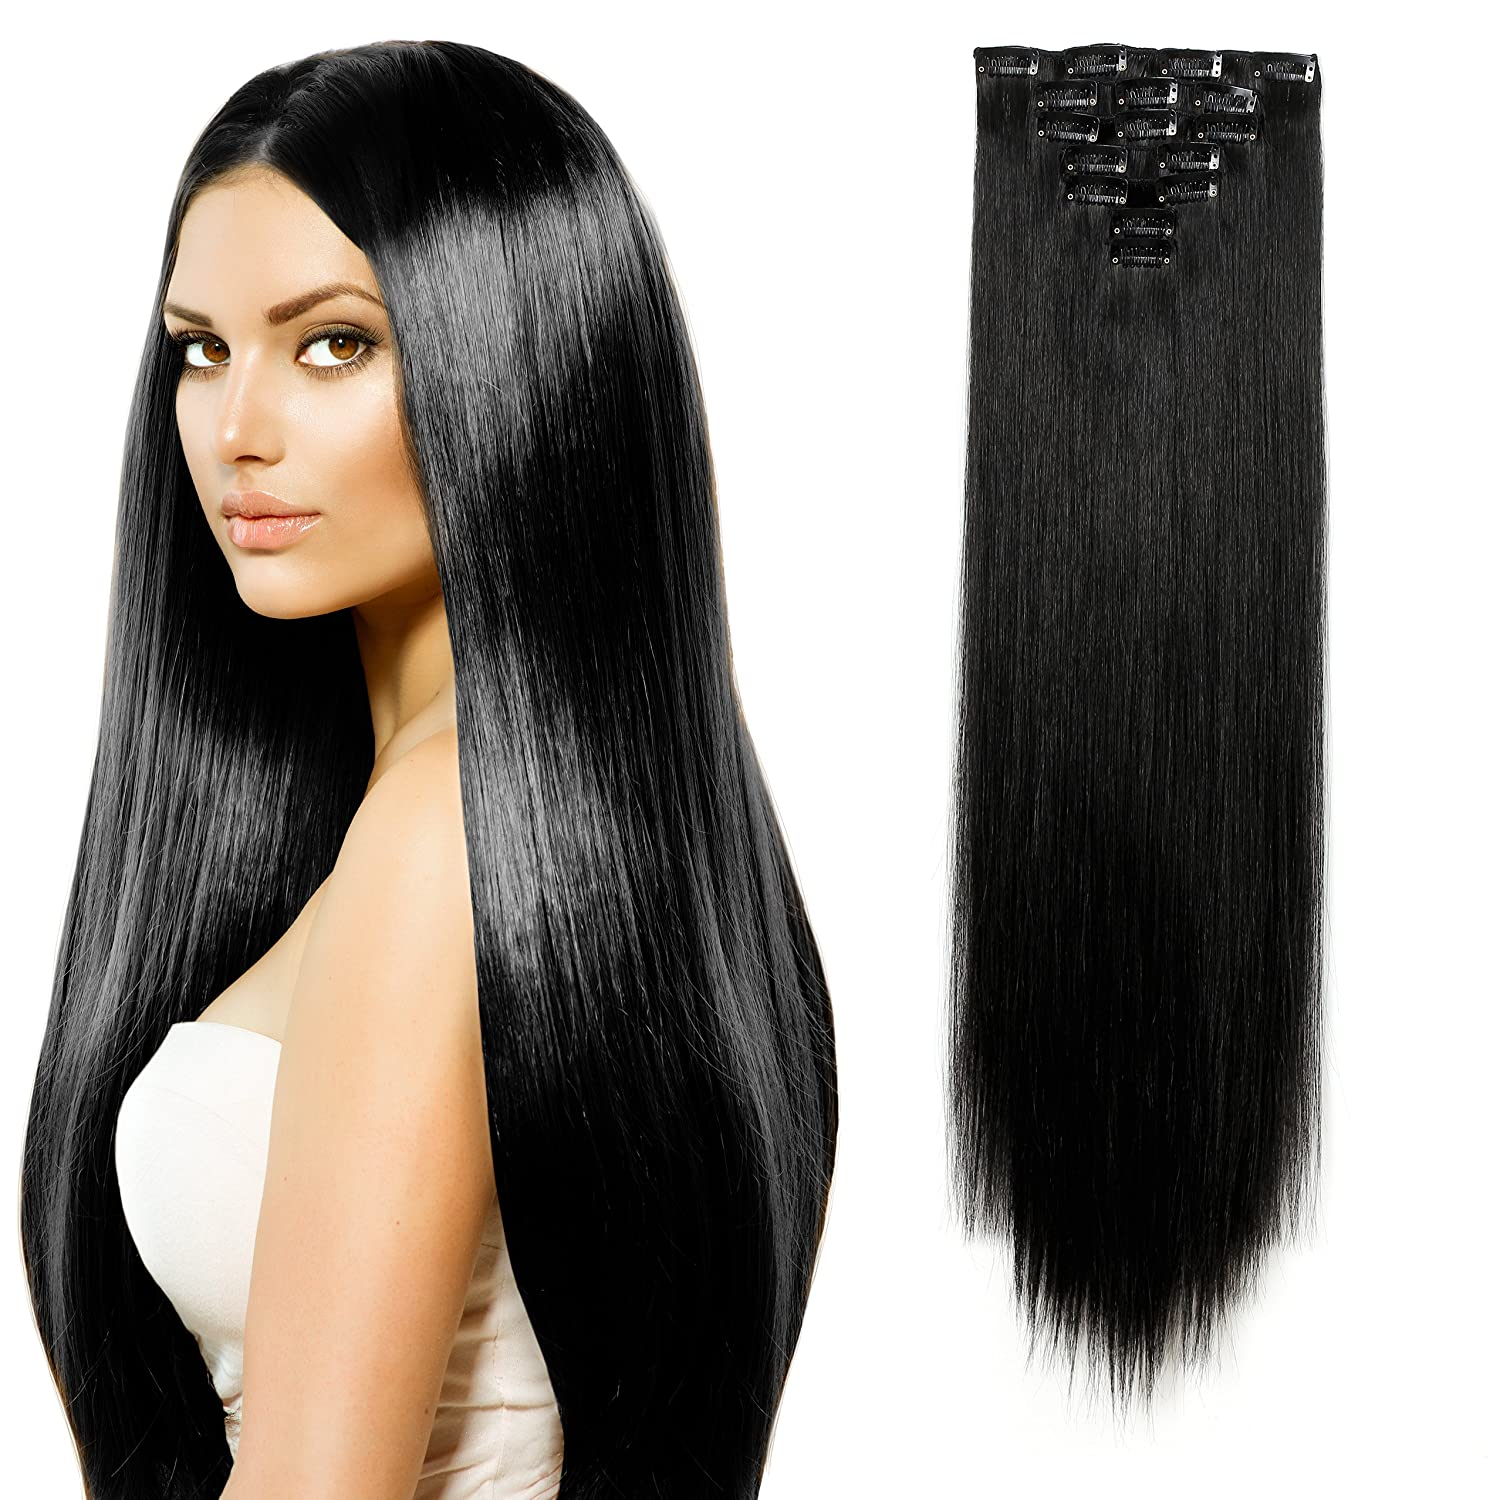 Onedor 24 Straight Full Head Kanekalon Futura Heat Resistance Hair